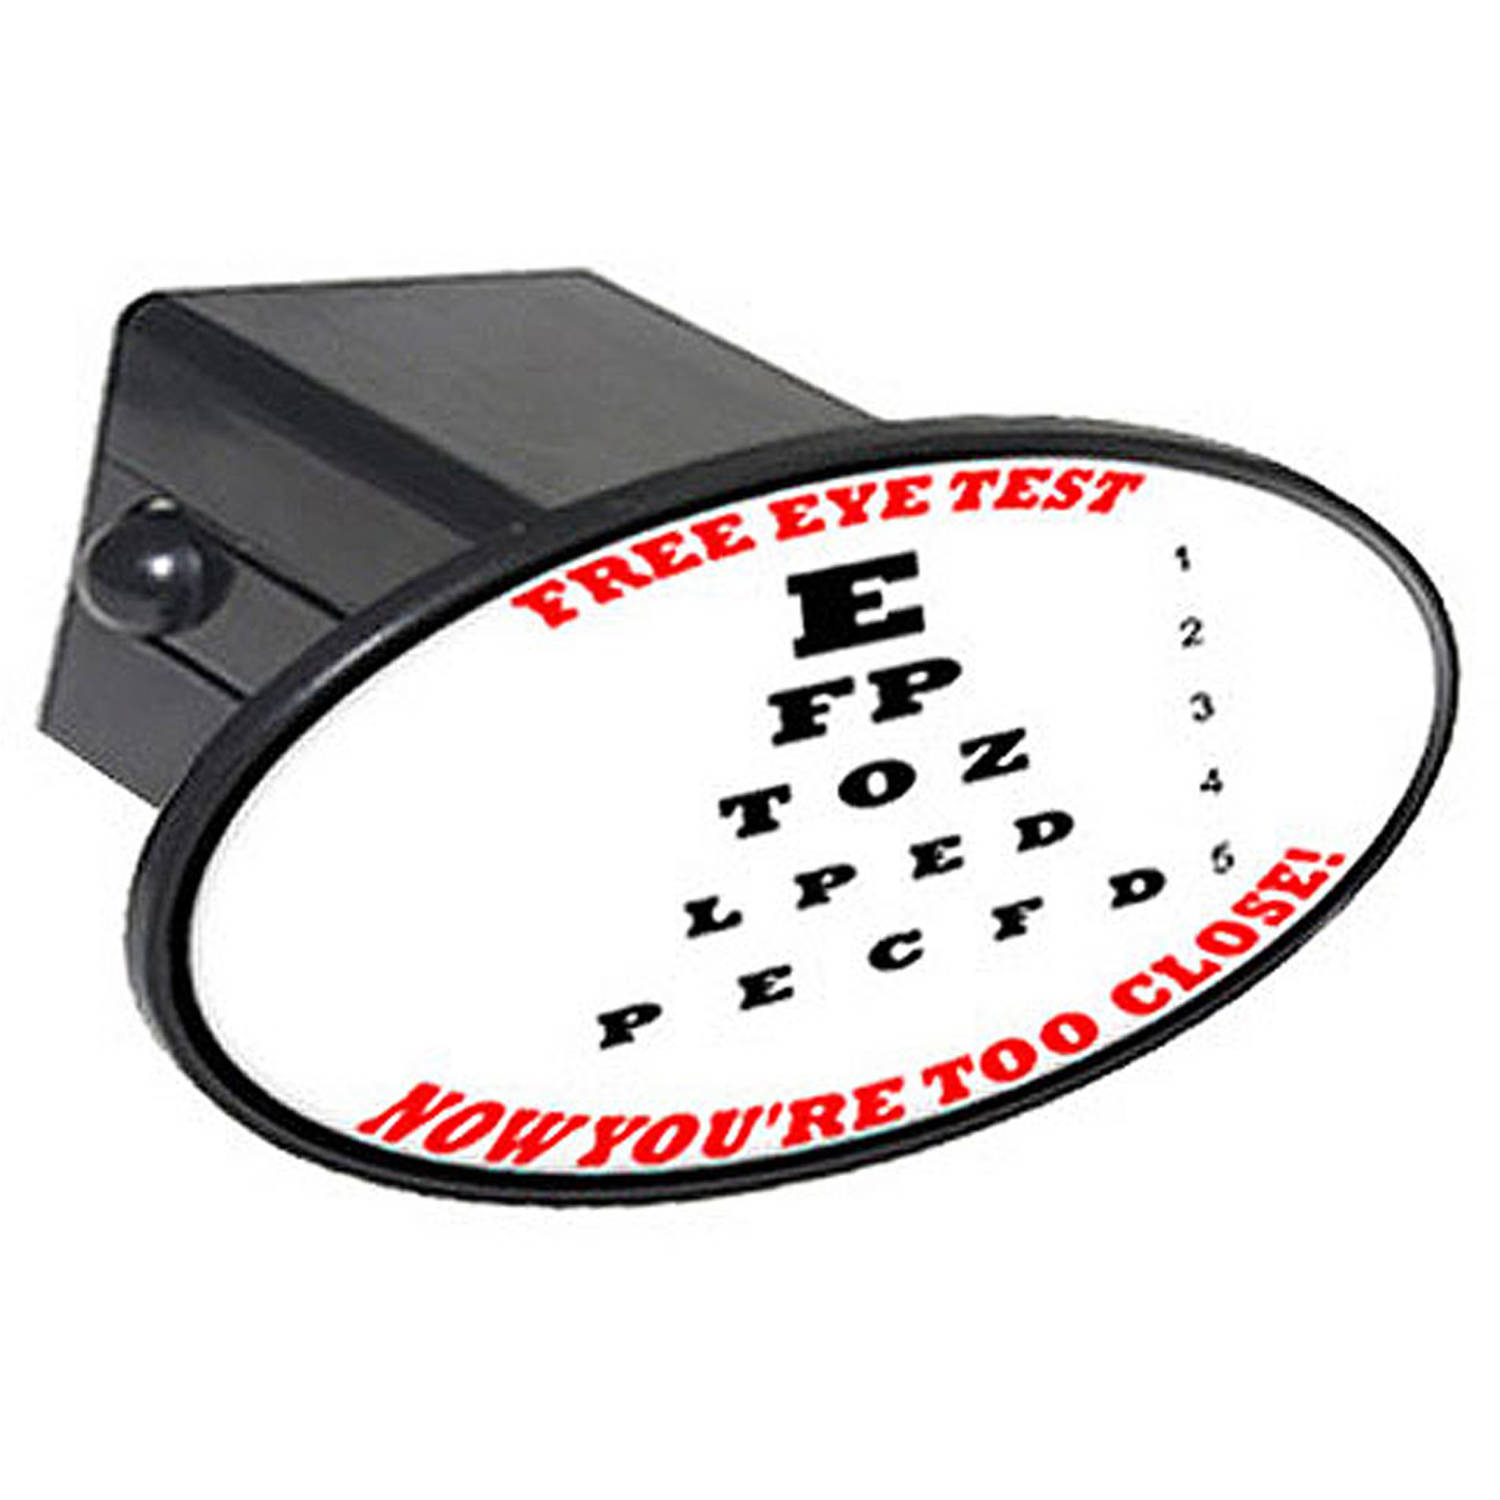 "Free Eye Test, Your Getting Closer 2"" Oval Tow Trailer Hitch Cover Plug Insert"